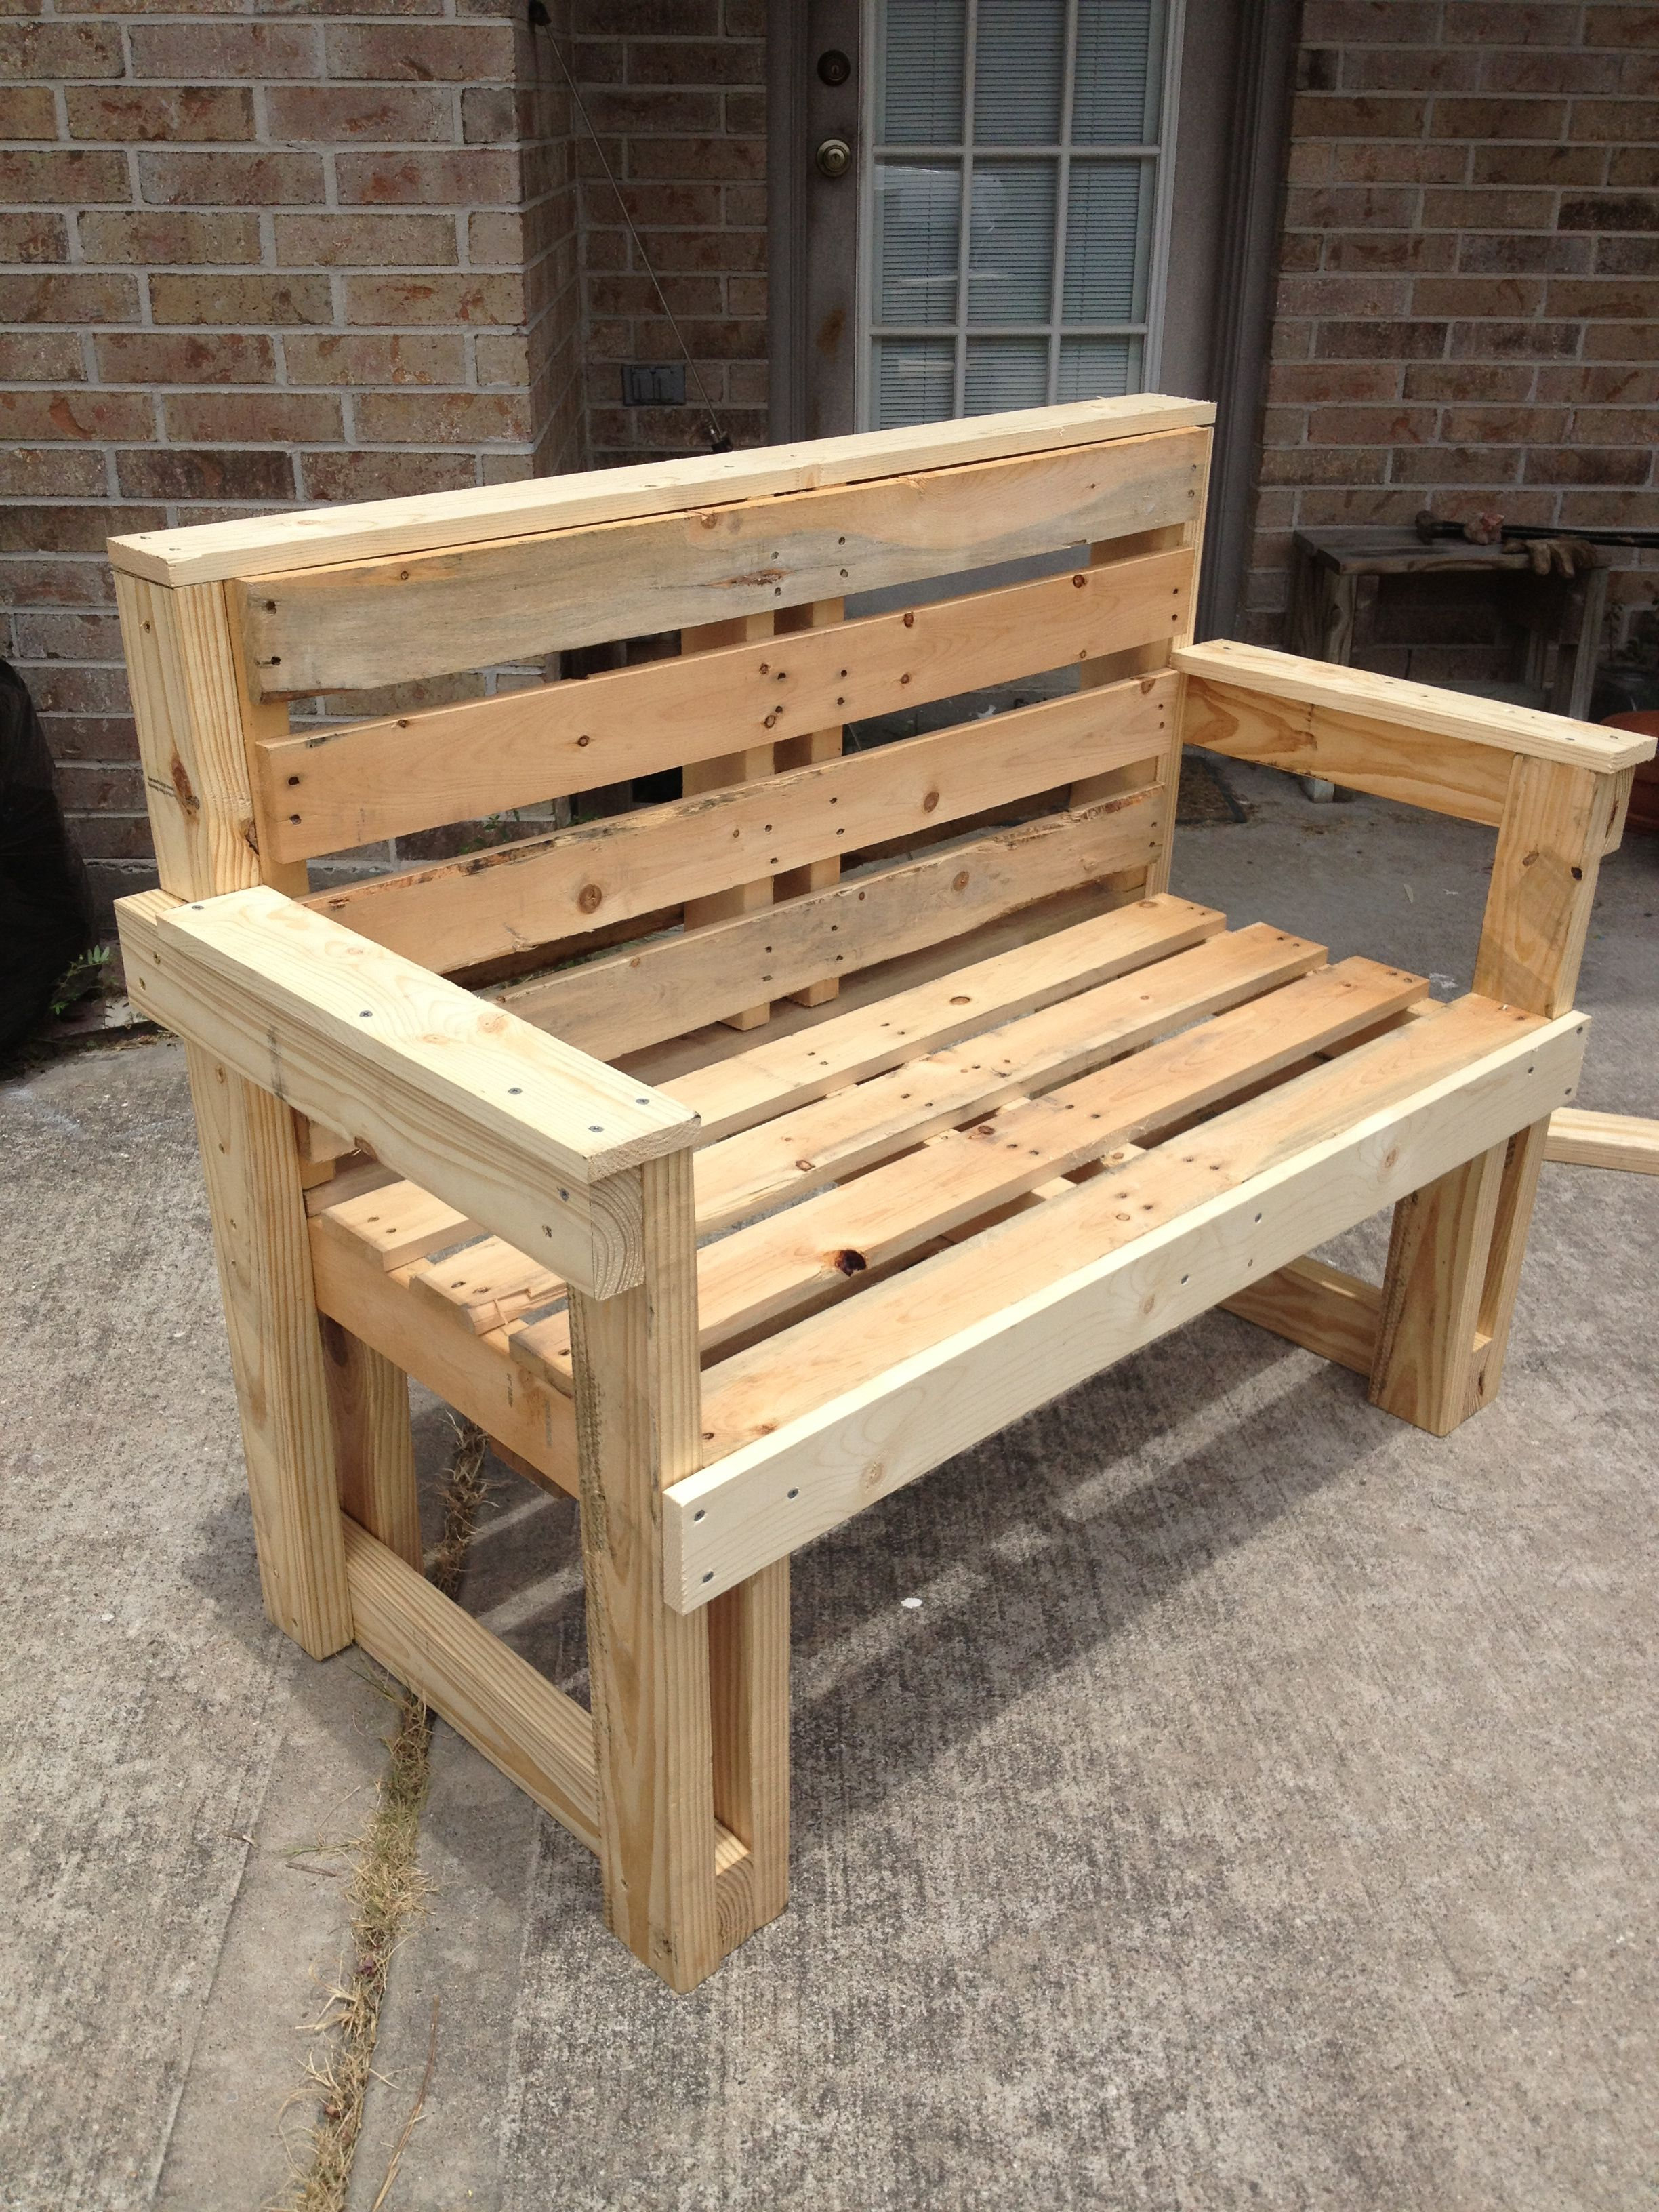 Pallet furniture pallet projects pinterest pallet for Pallet furniture designs